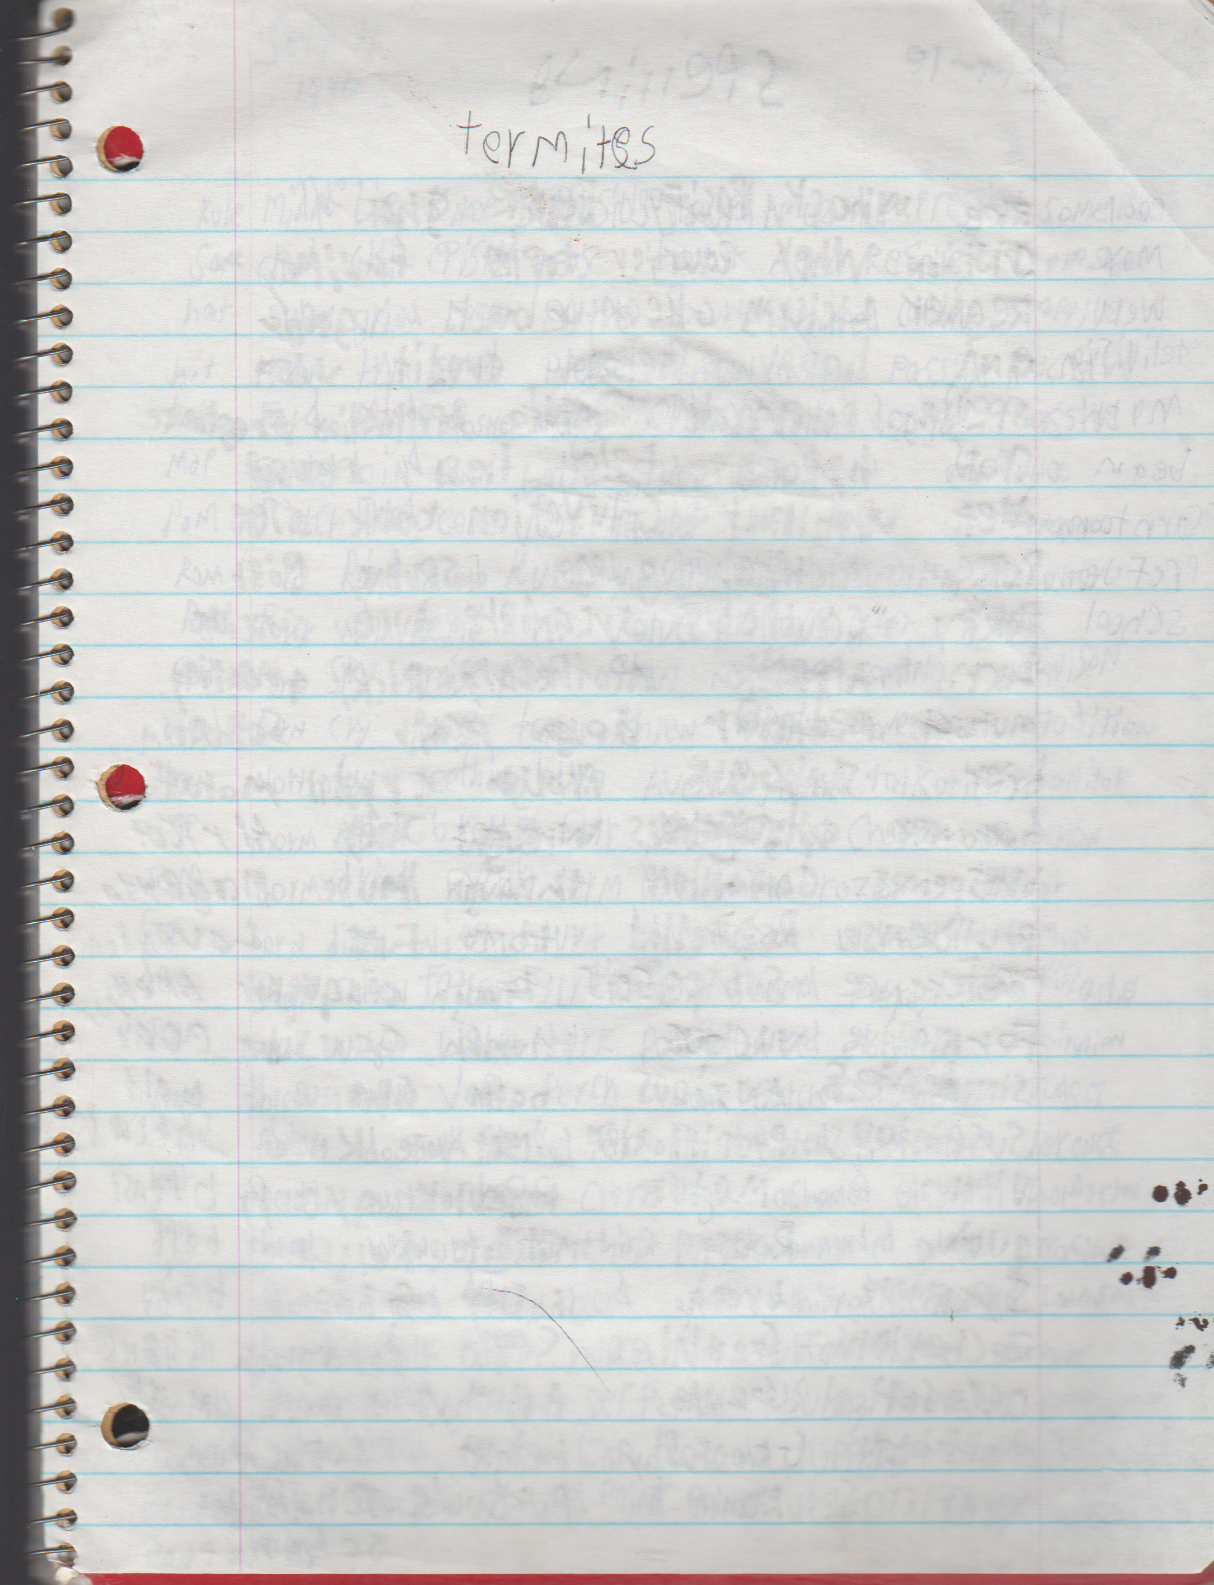 1996-08-18 - Saturday - 11 yr old Joey Arnold's School Book, dates through to 1998 apx, mostly 96, Writings, Drawings, Etc-100.png